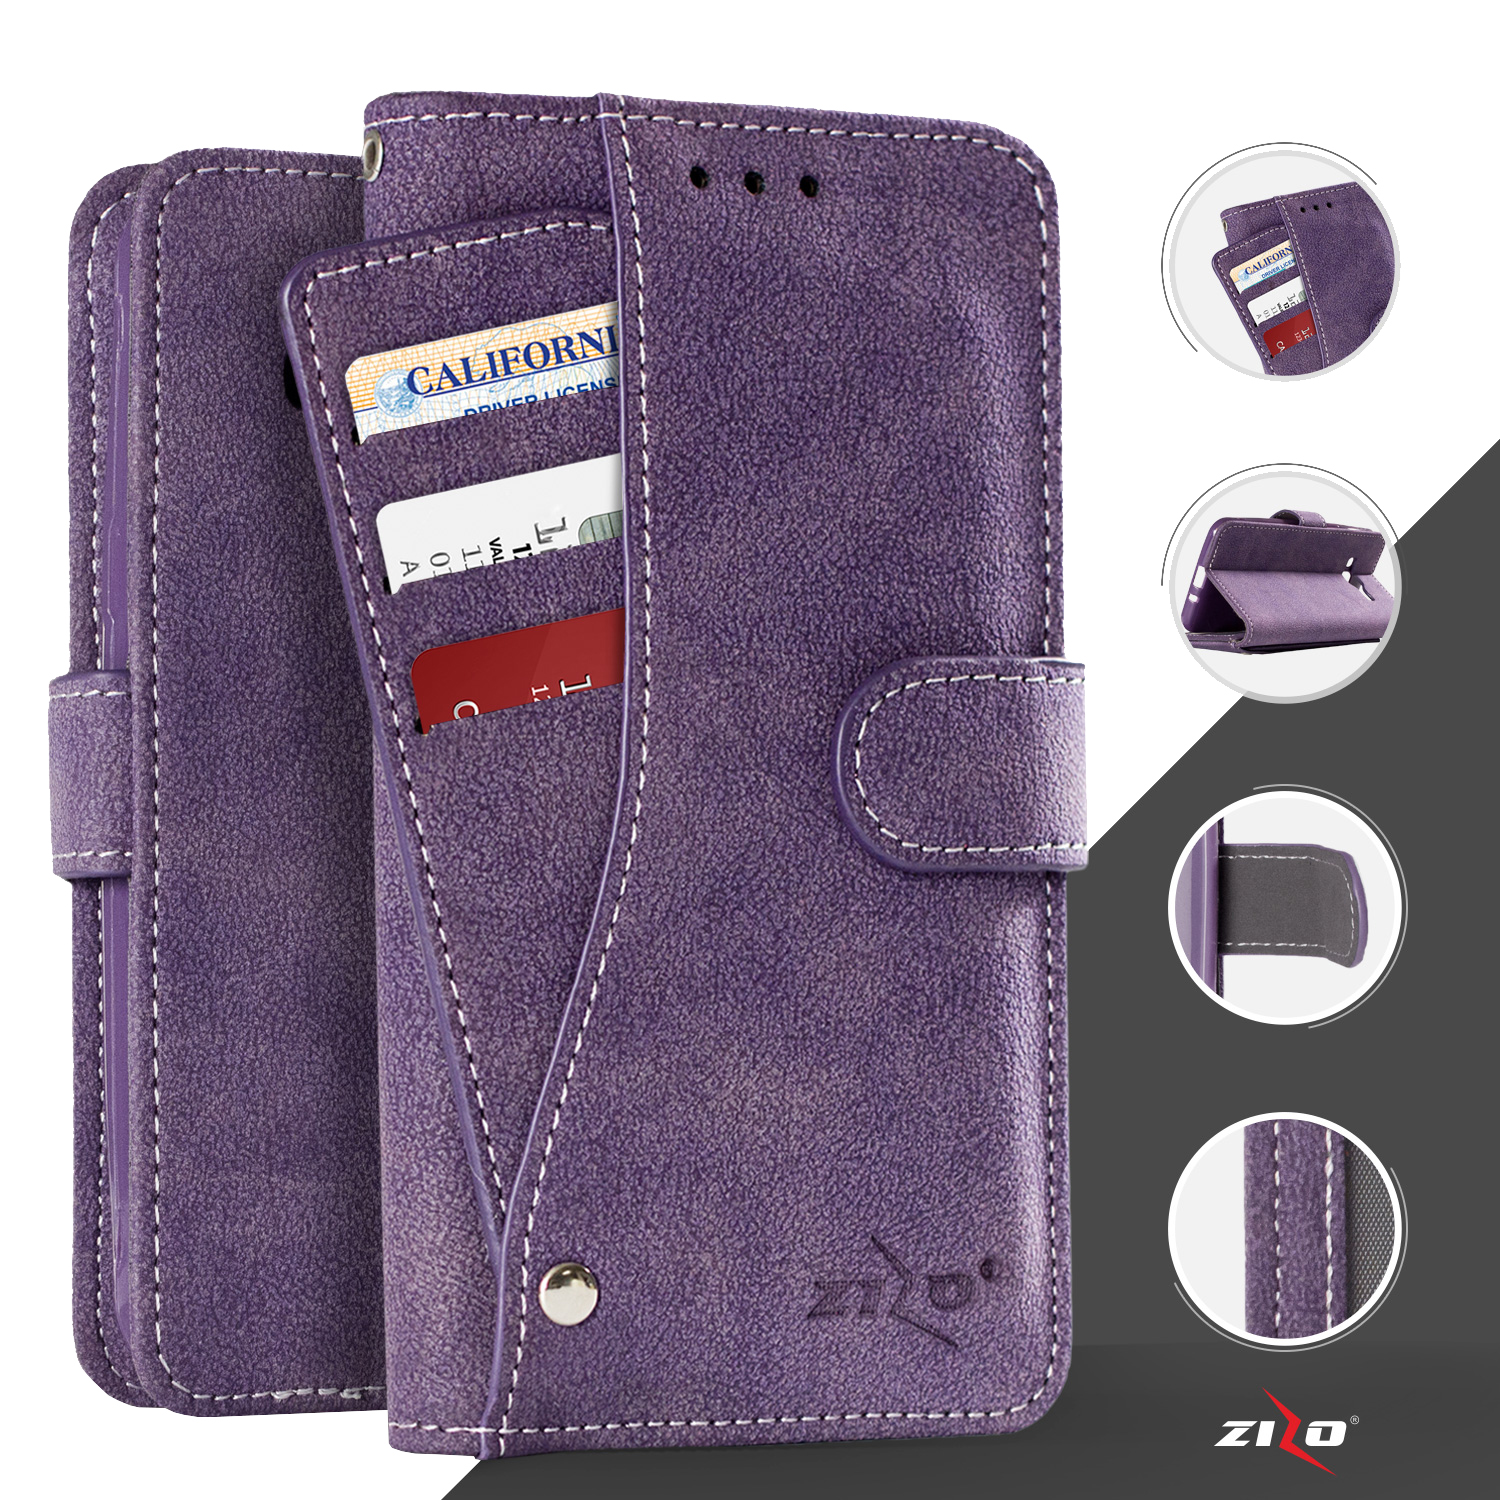 Samsung Galaxy S7 Suede Cellphone Wallet Case Slide Out Pocket and Kickstand Card ID Holder Durable Seams Magnetic Flap Closure- Purple